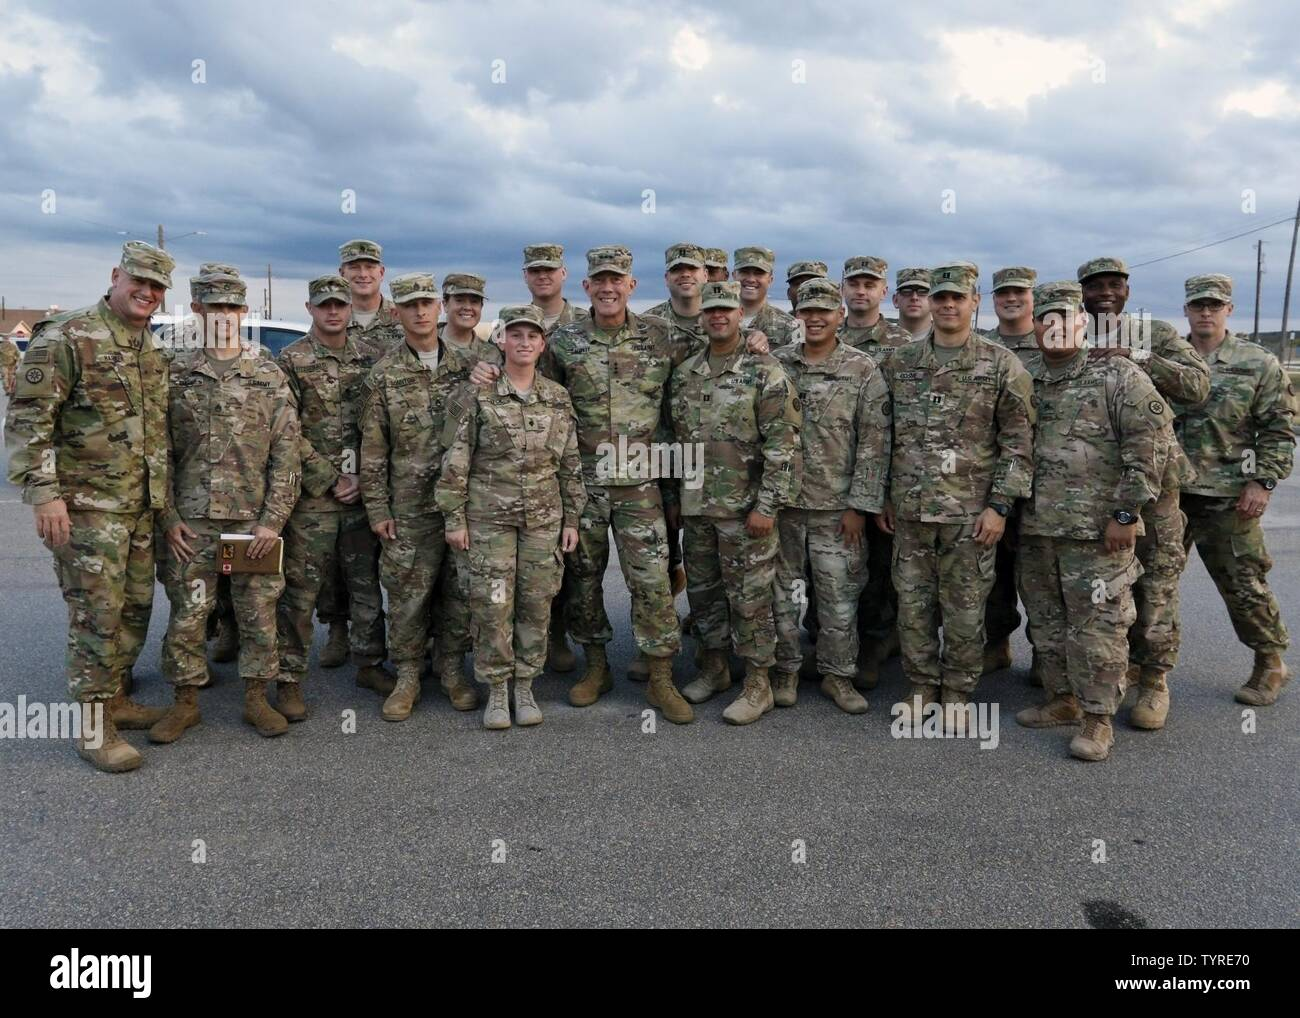 The Commanding General of the U.S. Army Reserve Command, Lt. Gen. Charles D. Luckey, poses with Soldiers from the 316th Sustainment Command (Expeditionary), a U.S. Army Reserve unit from Coraopolis, Pa. Nov. 22, 2016. - Stock Image